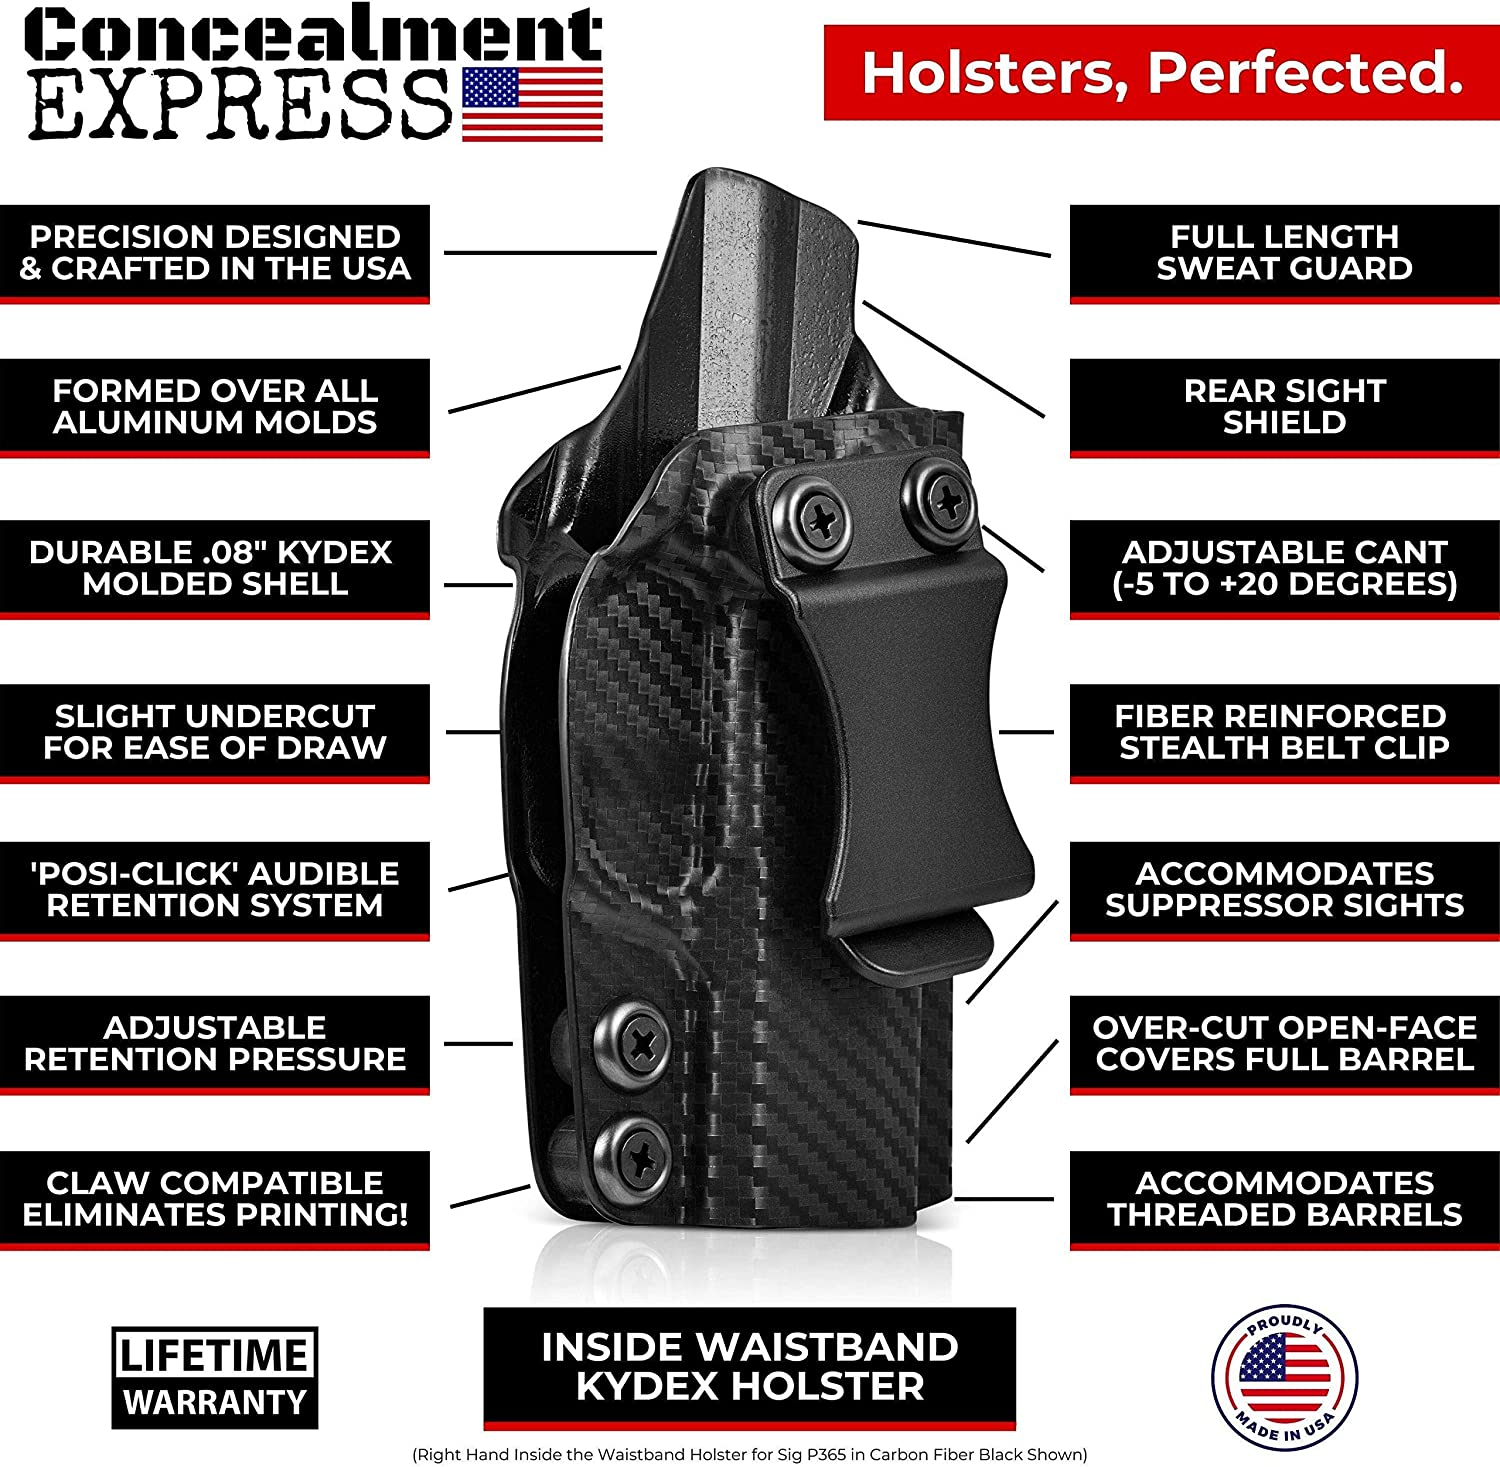 US Made CF BLK, RH Adj - Inside Waistband Concealed Carry Concealment Express IWB KYDEX Holster: fits Ruger SR22 Cant//Retention